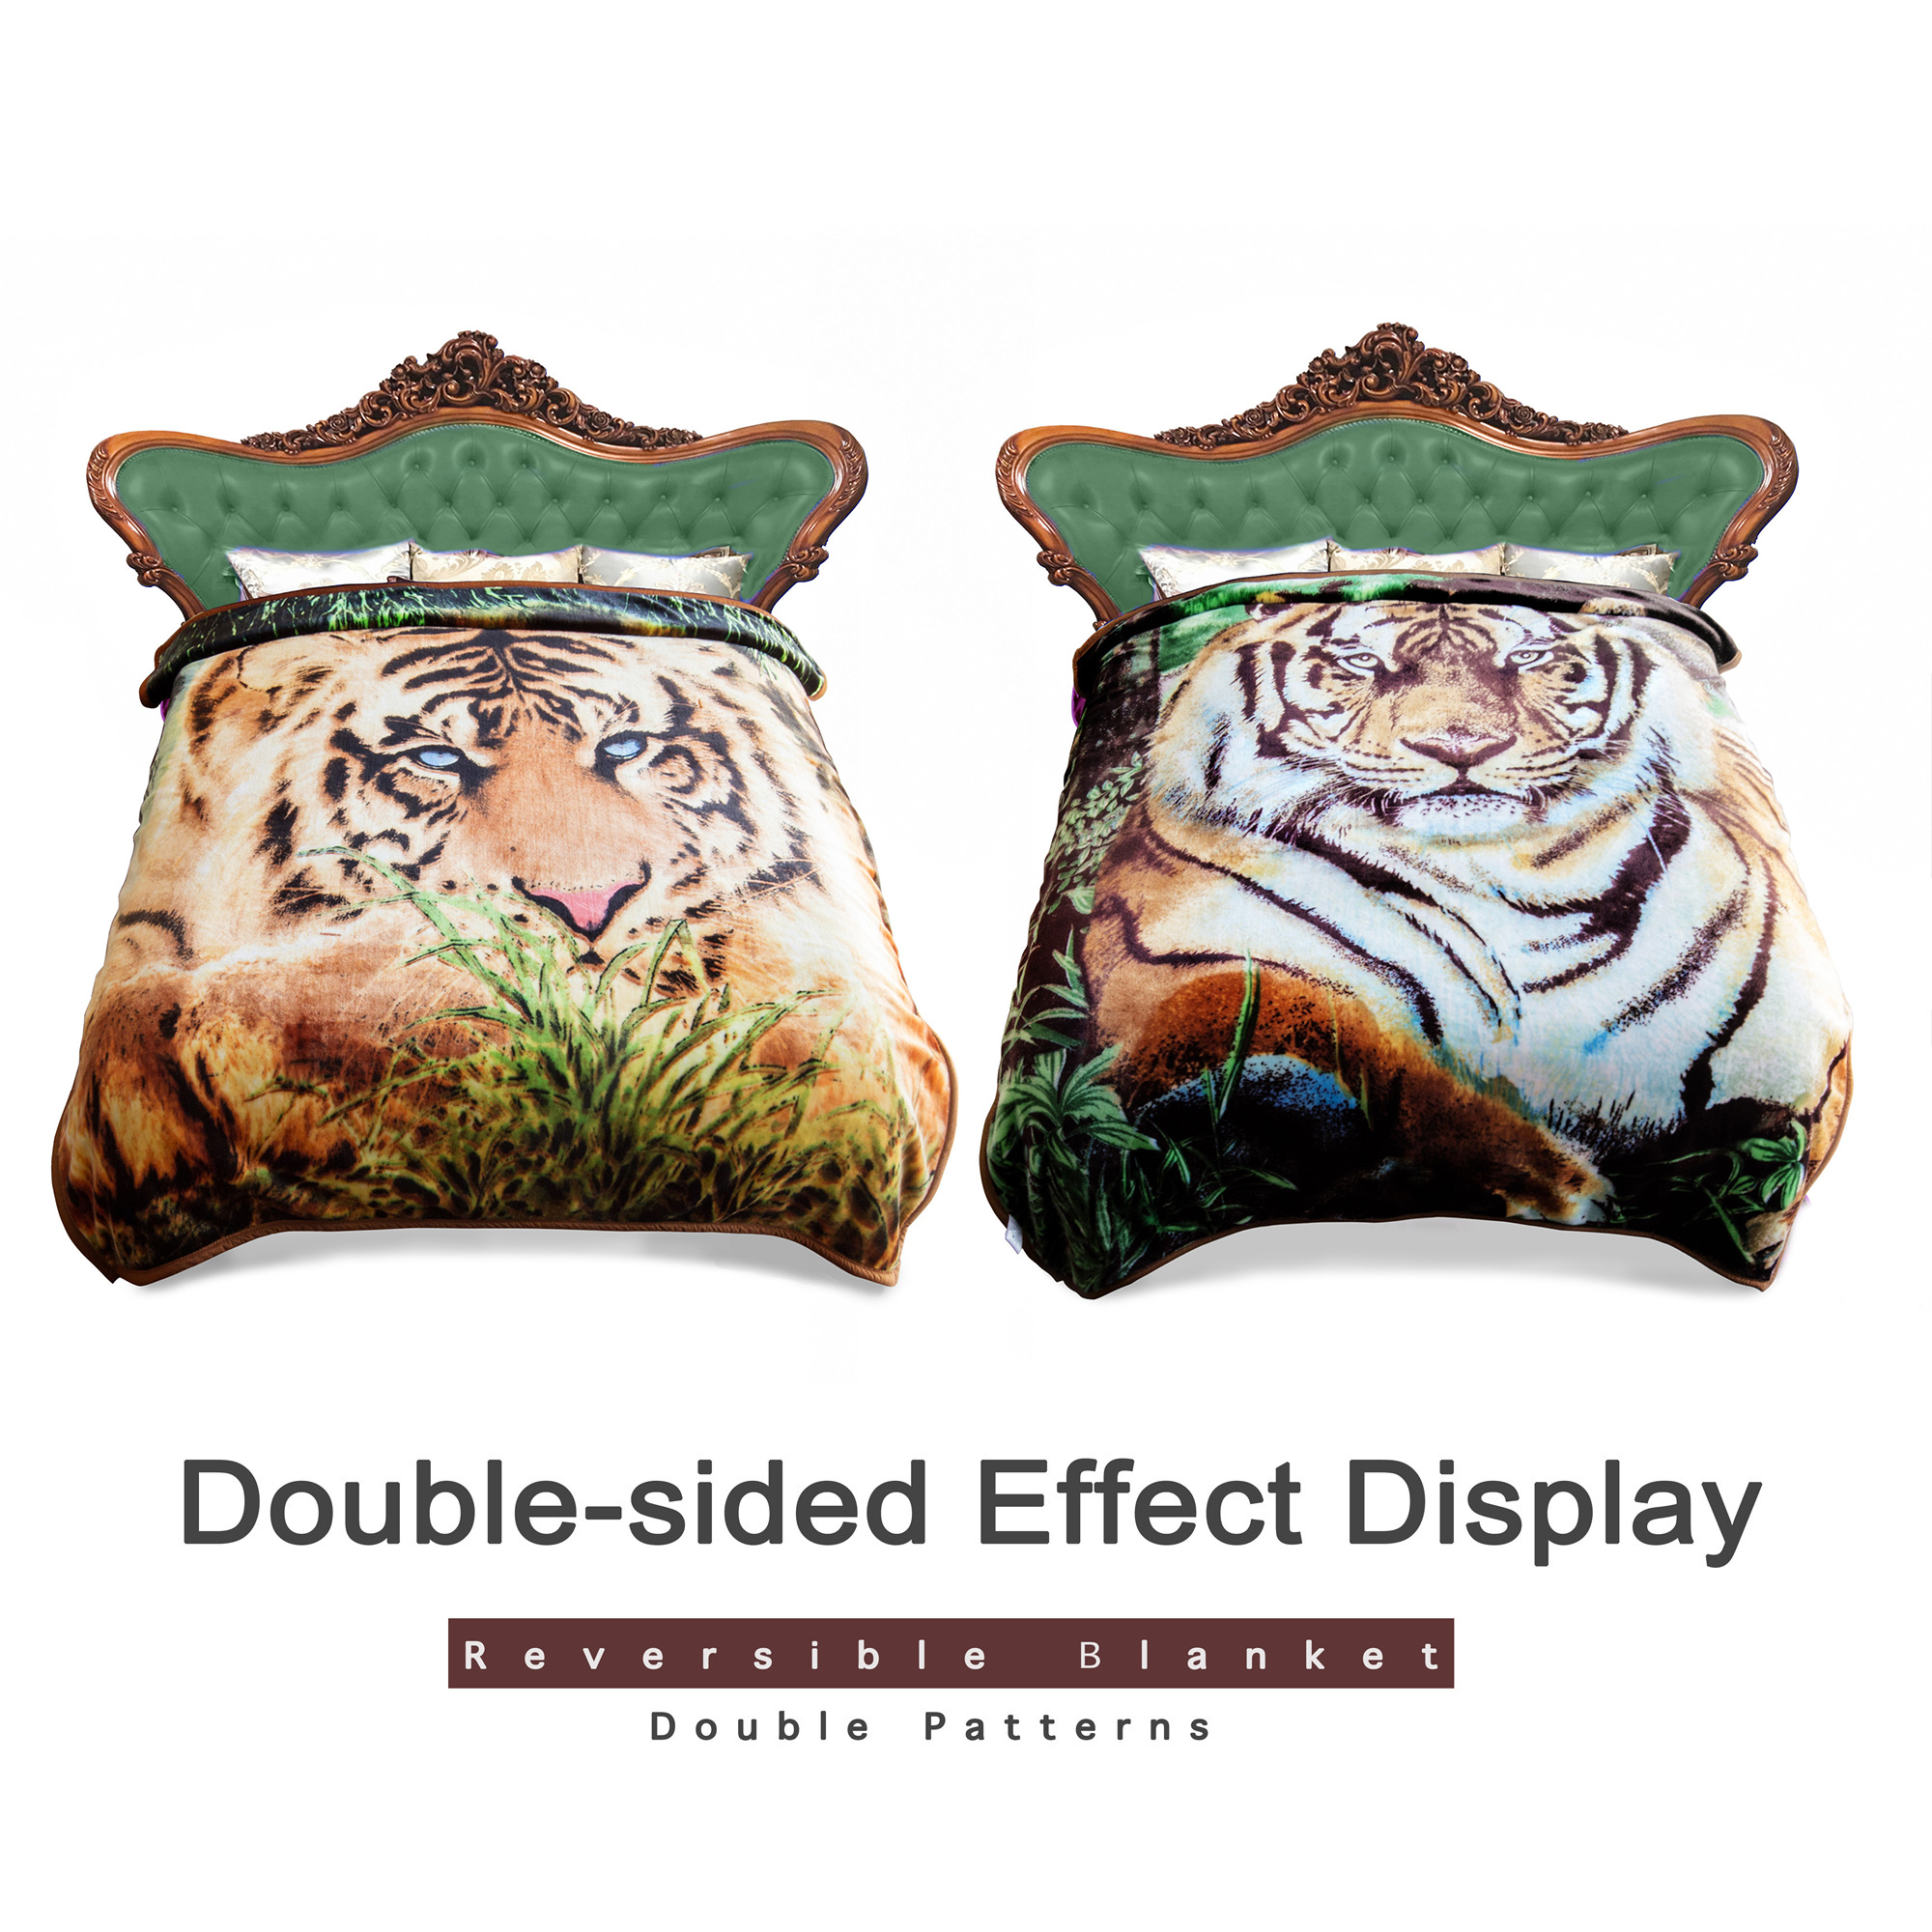 "Home Bedroom Reversible Soft Micro-plush Mink Blanket 2 Ply 2 Sides Tiger Green Printed Warm Raschel Plush Blanket For Bed Queen Size 75""x89"" 5LB"